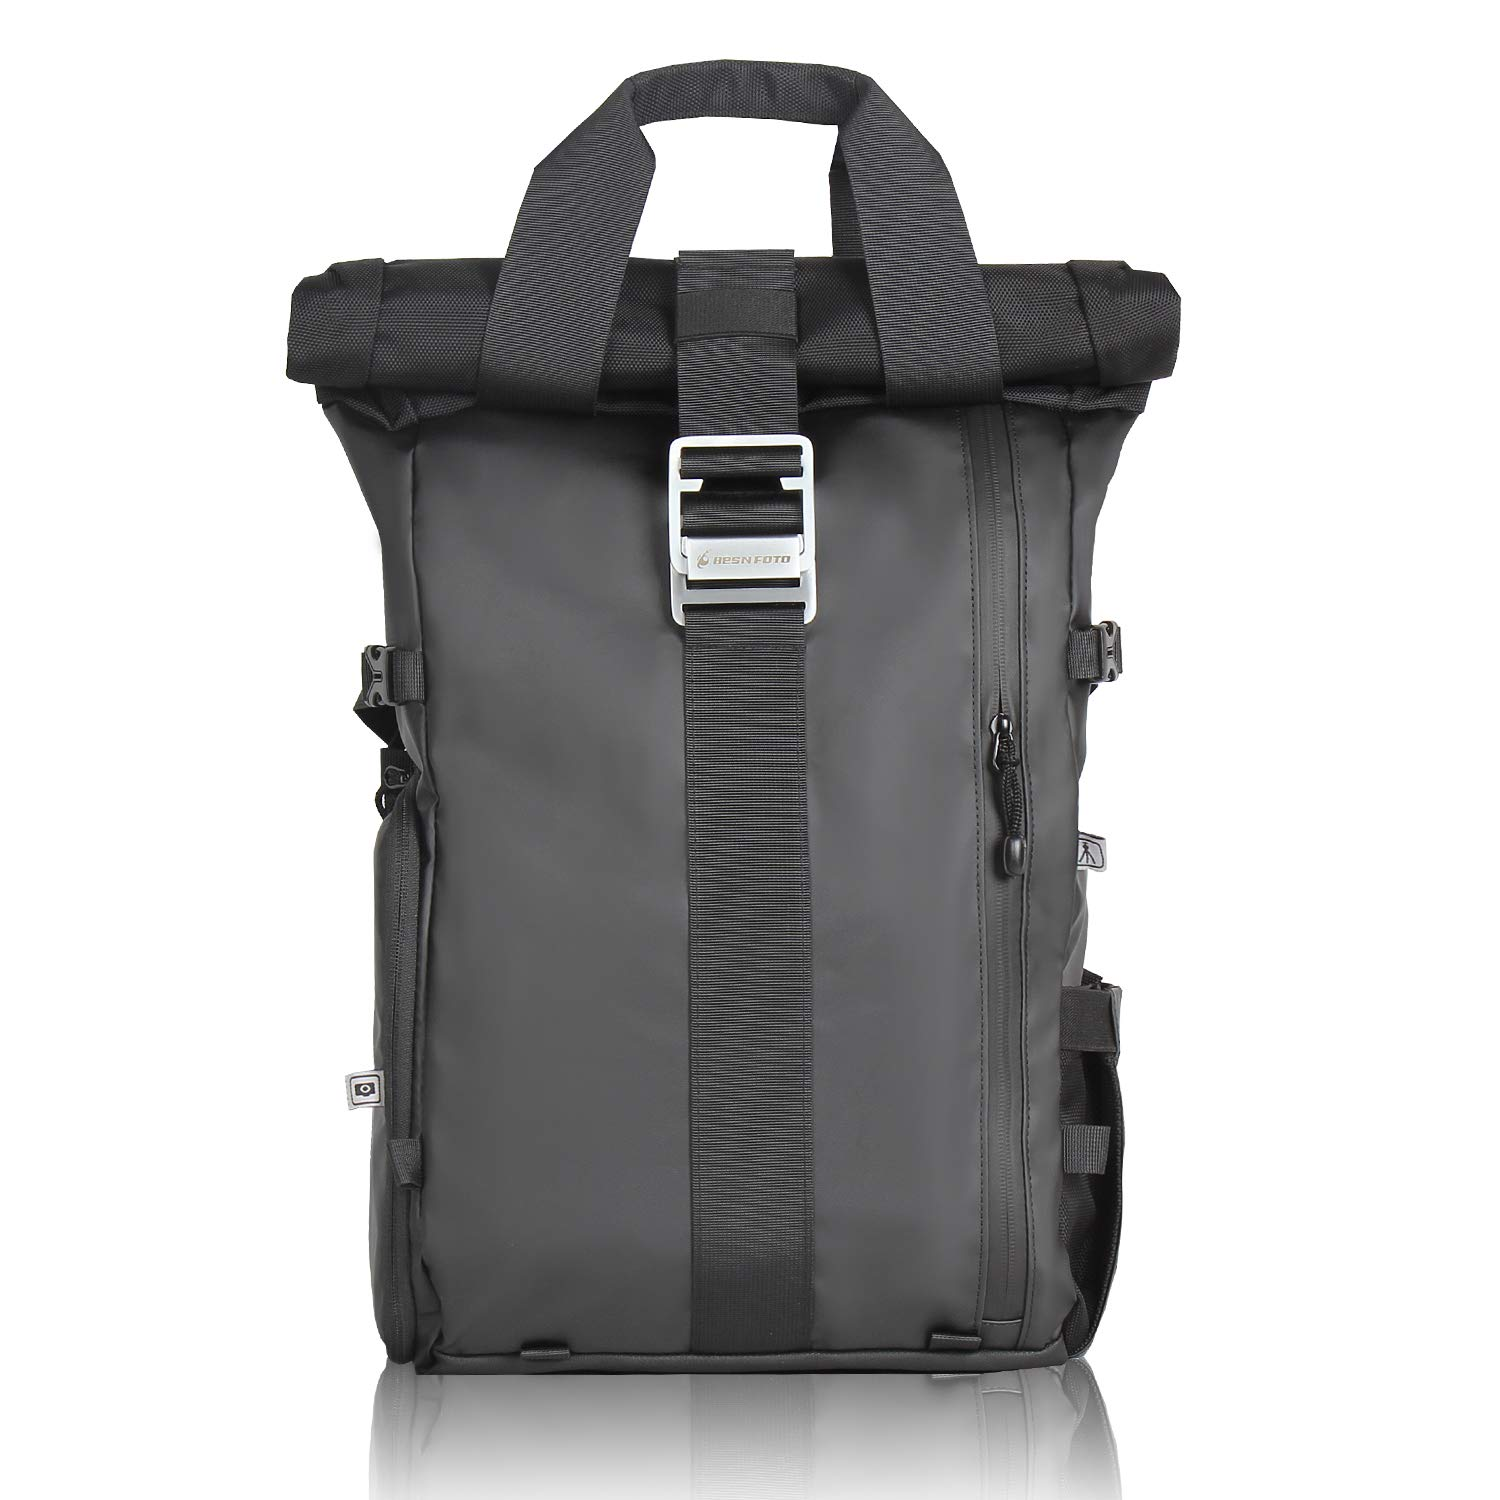 Camera Backpack Rolltop with Laptop Compartment Quick Side Access for DSLR SLR Cameras Removable Padded Shoulder Bag Case for Travel Photography Hiking Rucksack by BESNFOTO (Black) by Besnfoto